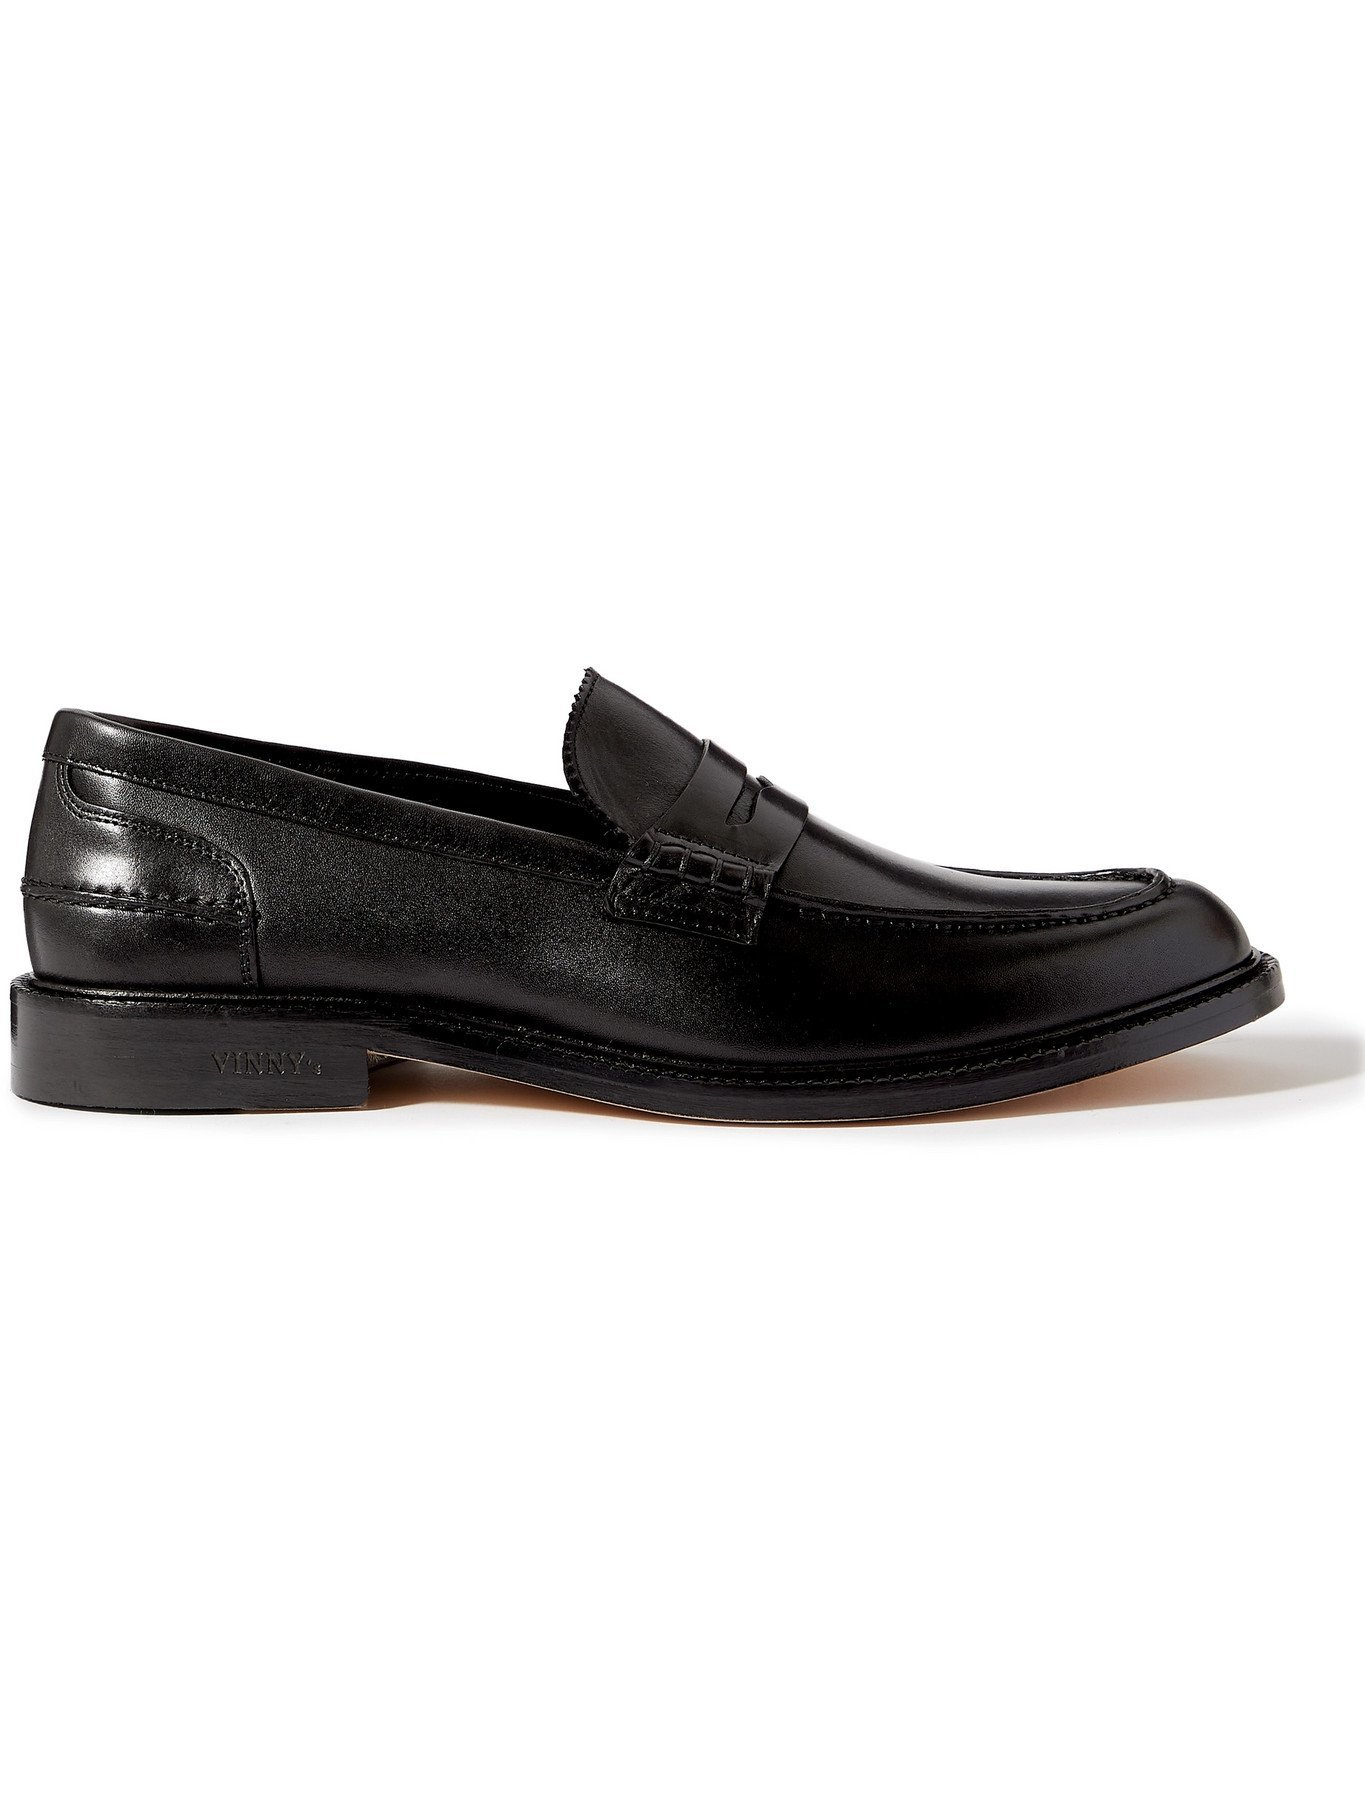 Photo: VINNY'S - Townee Leather Penny Loafers - Black - 41